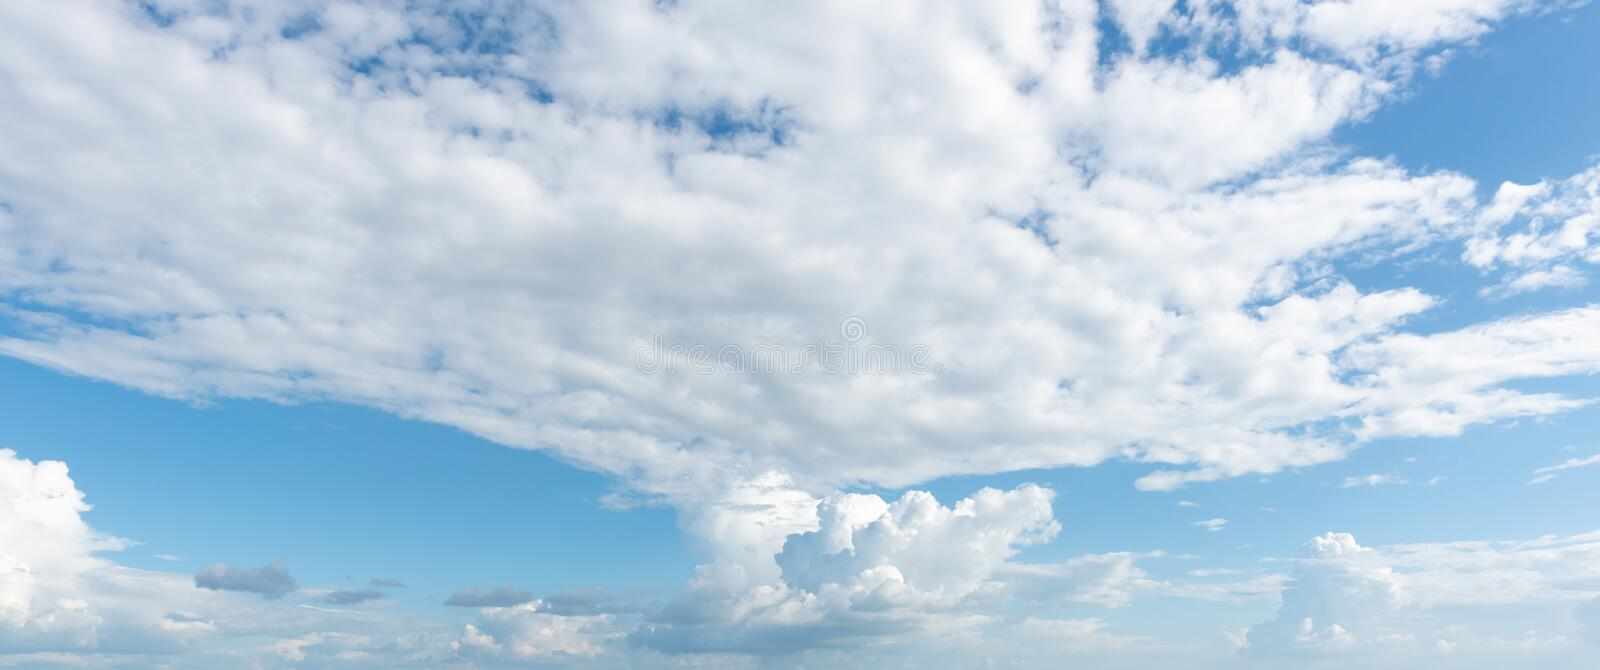 Panorama view of nature sky with clouds stock photography